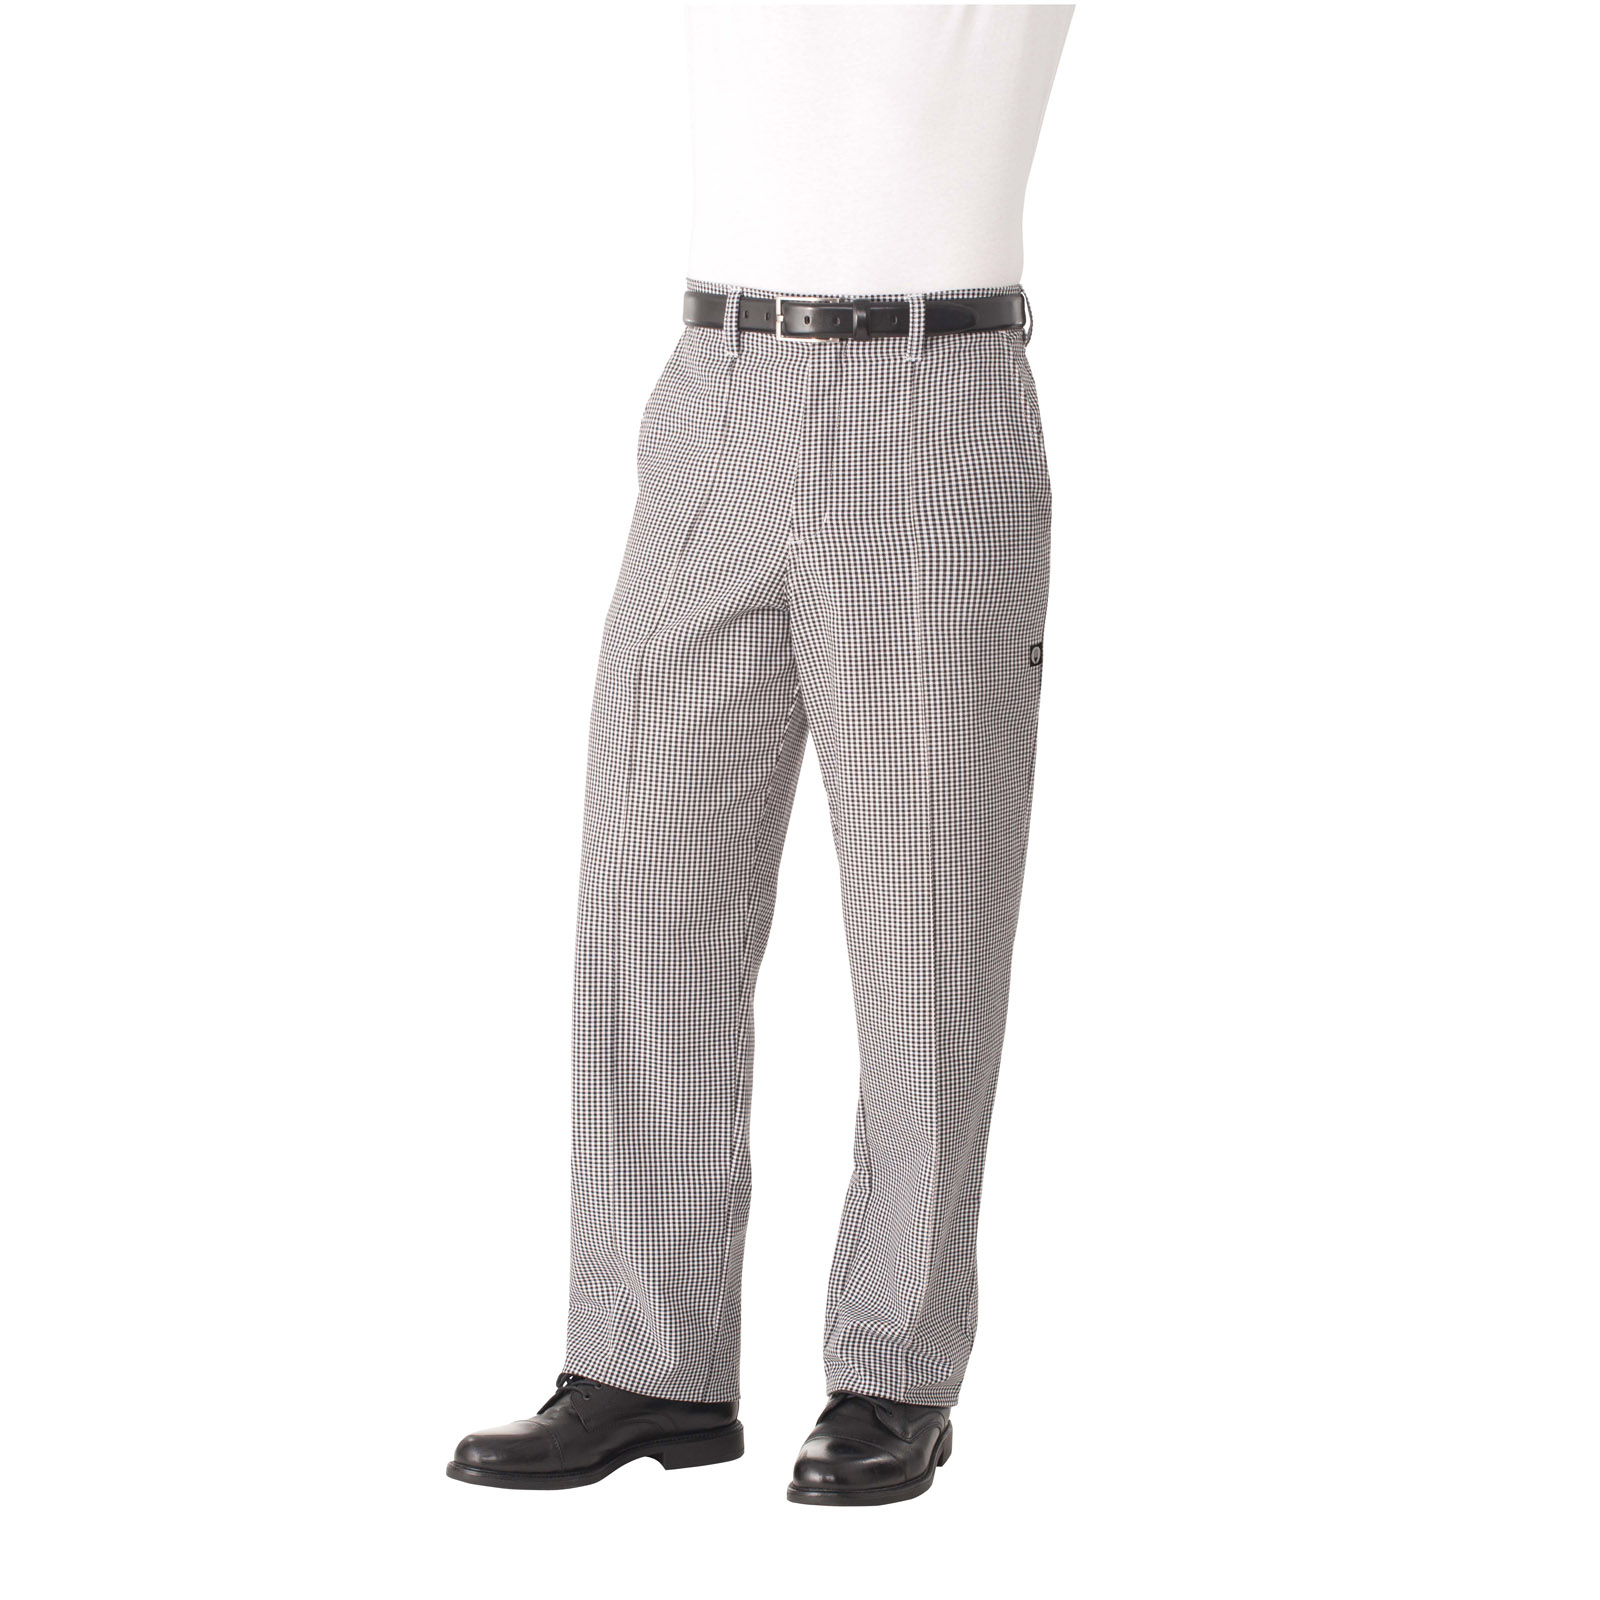 Chef Works BWCP00048 chef's pants